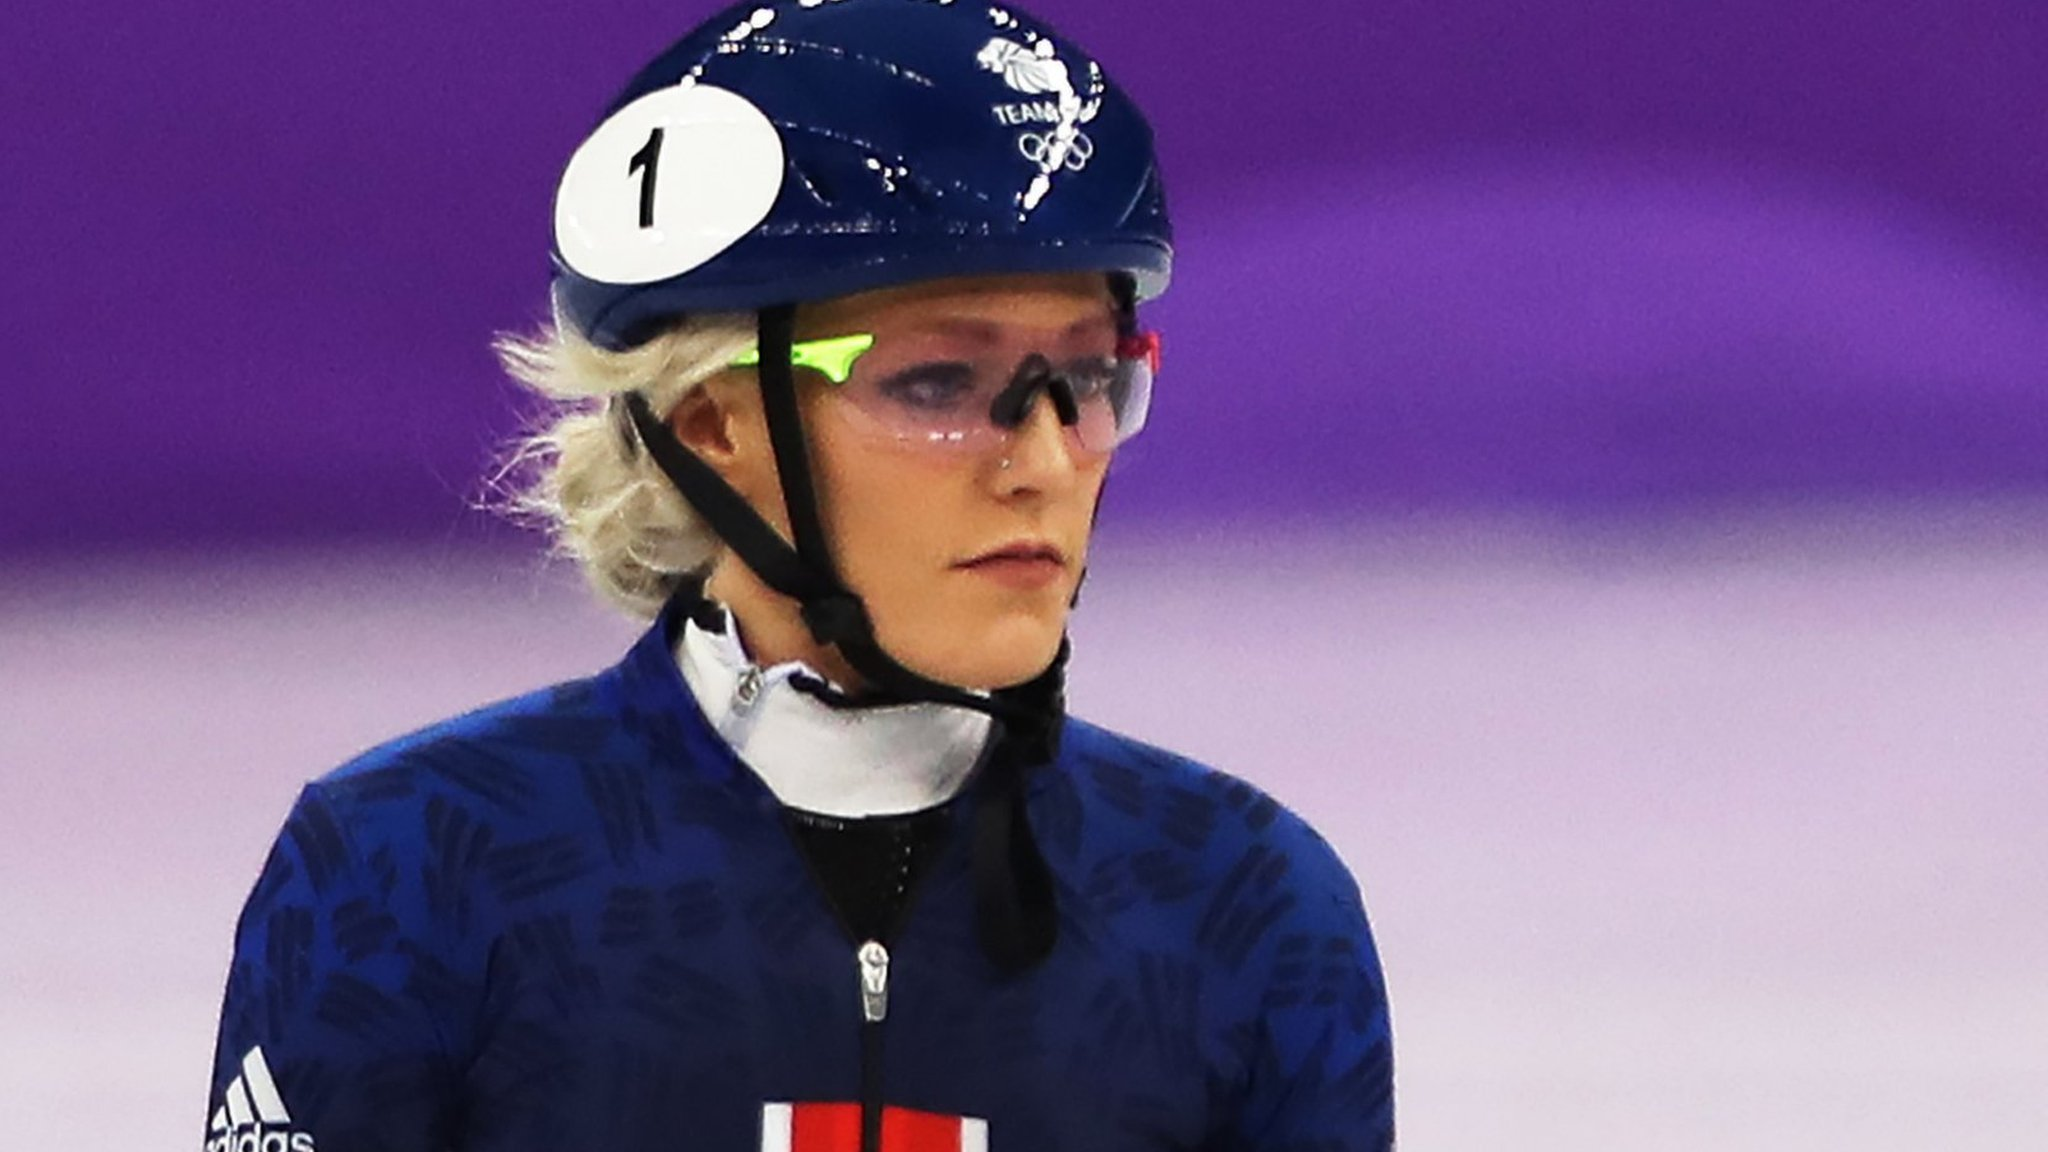 Elise Christie: Speed skater considered quitting after Winter Olympics